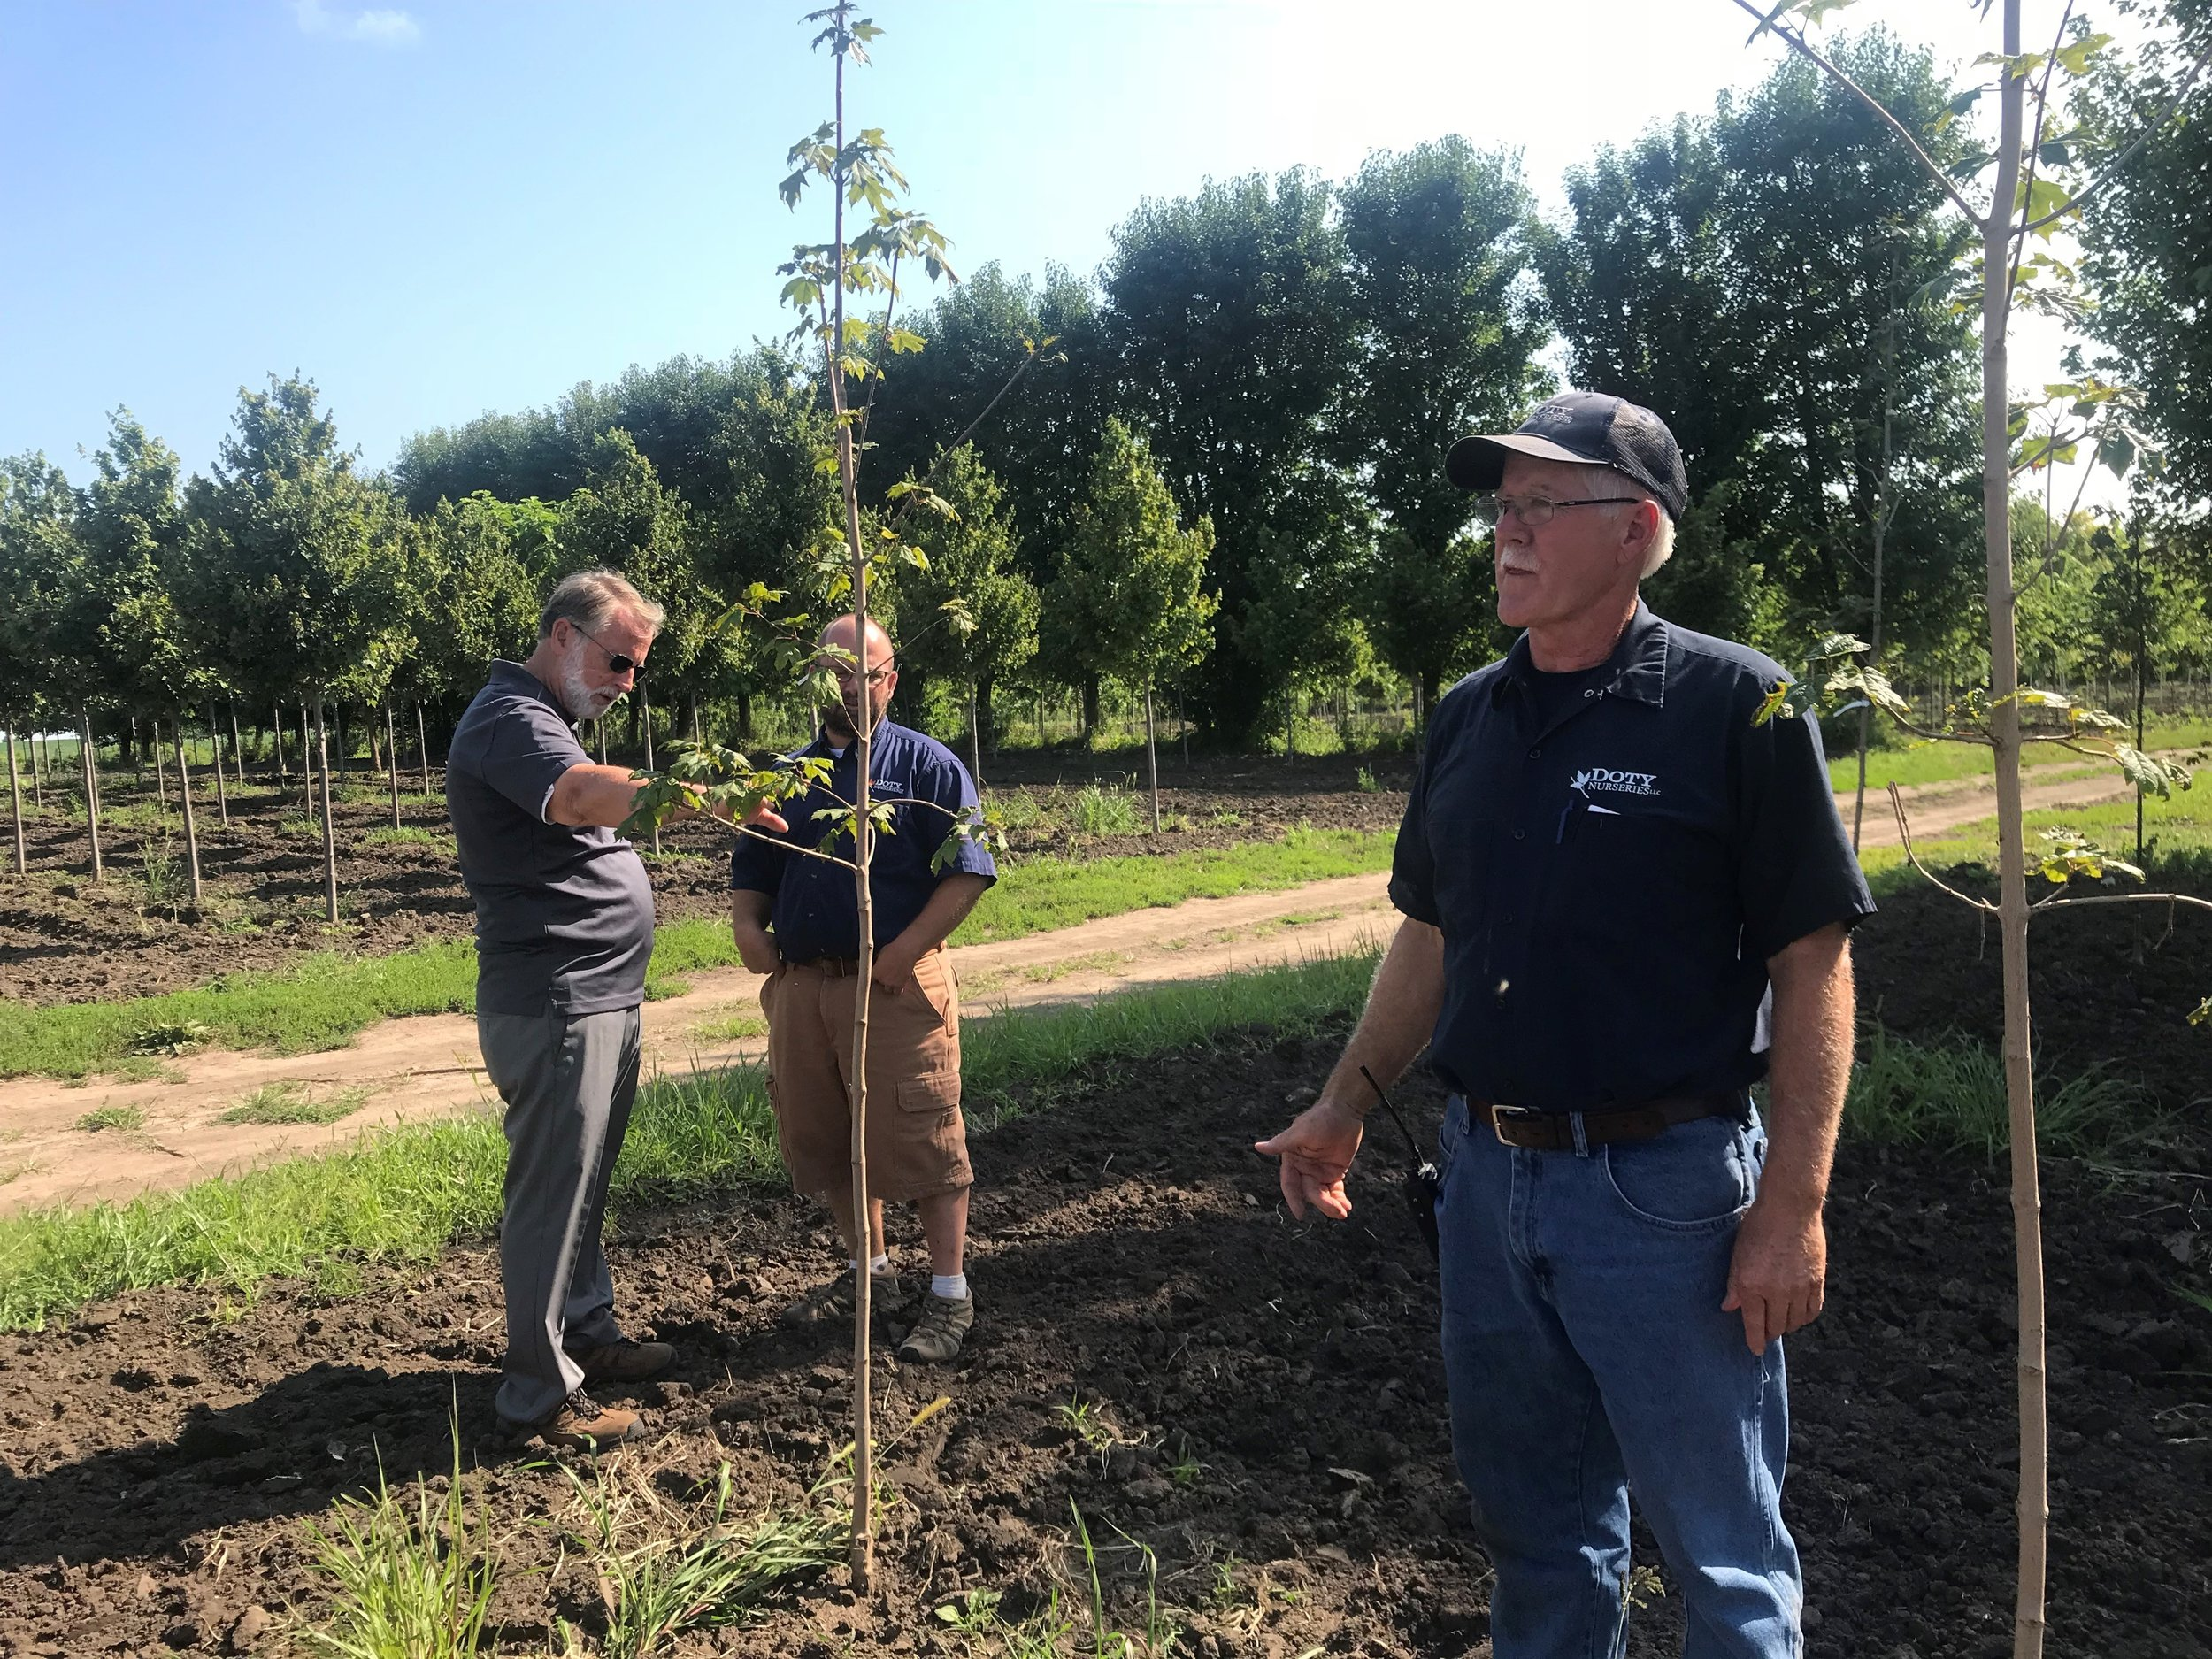 University of Illinois Extension educator Richard Hentschel (left) inspects a sampling with Doty Nurseries owner Ryan Doty, while Ken Doty (right) talks with First Light host Brian O'Keefe